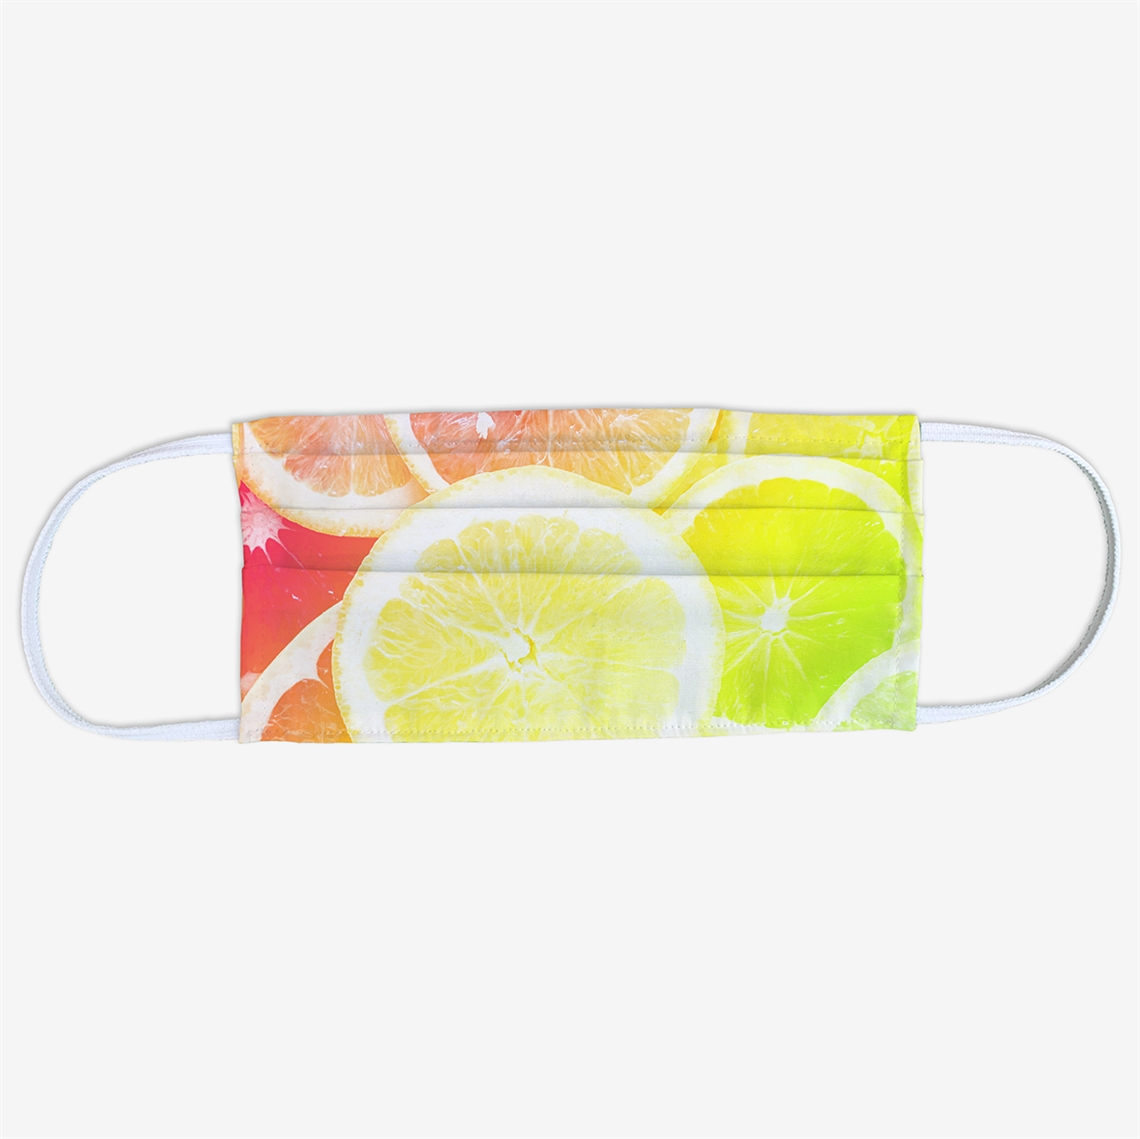 Picture of Neon Fruit Face Mask